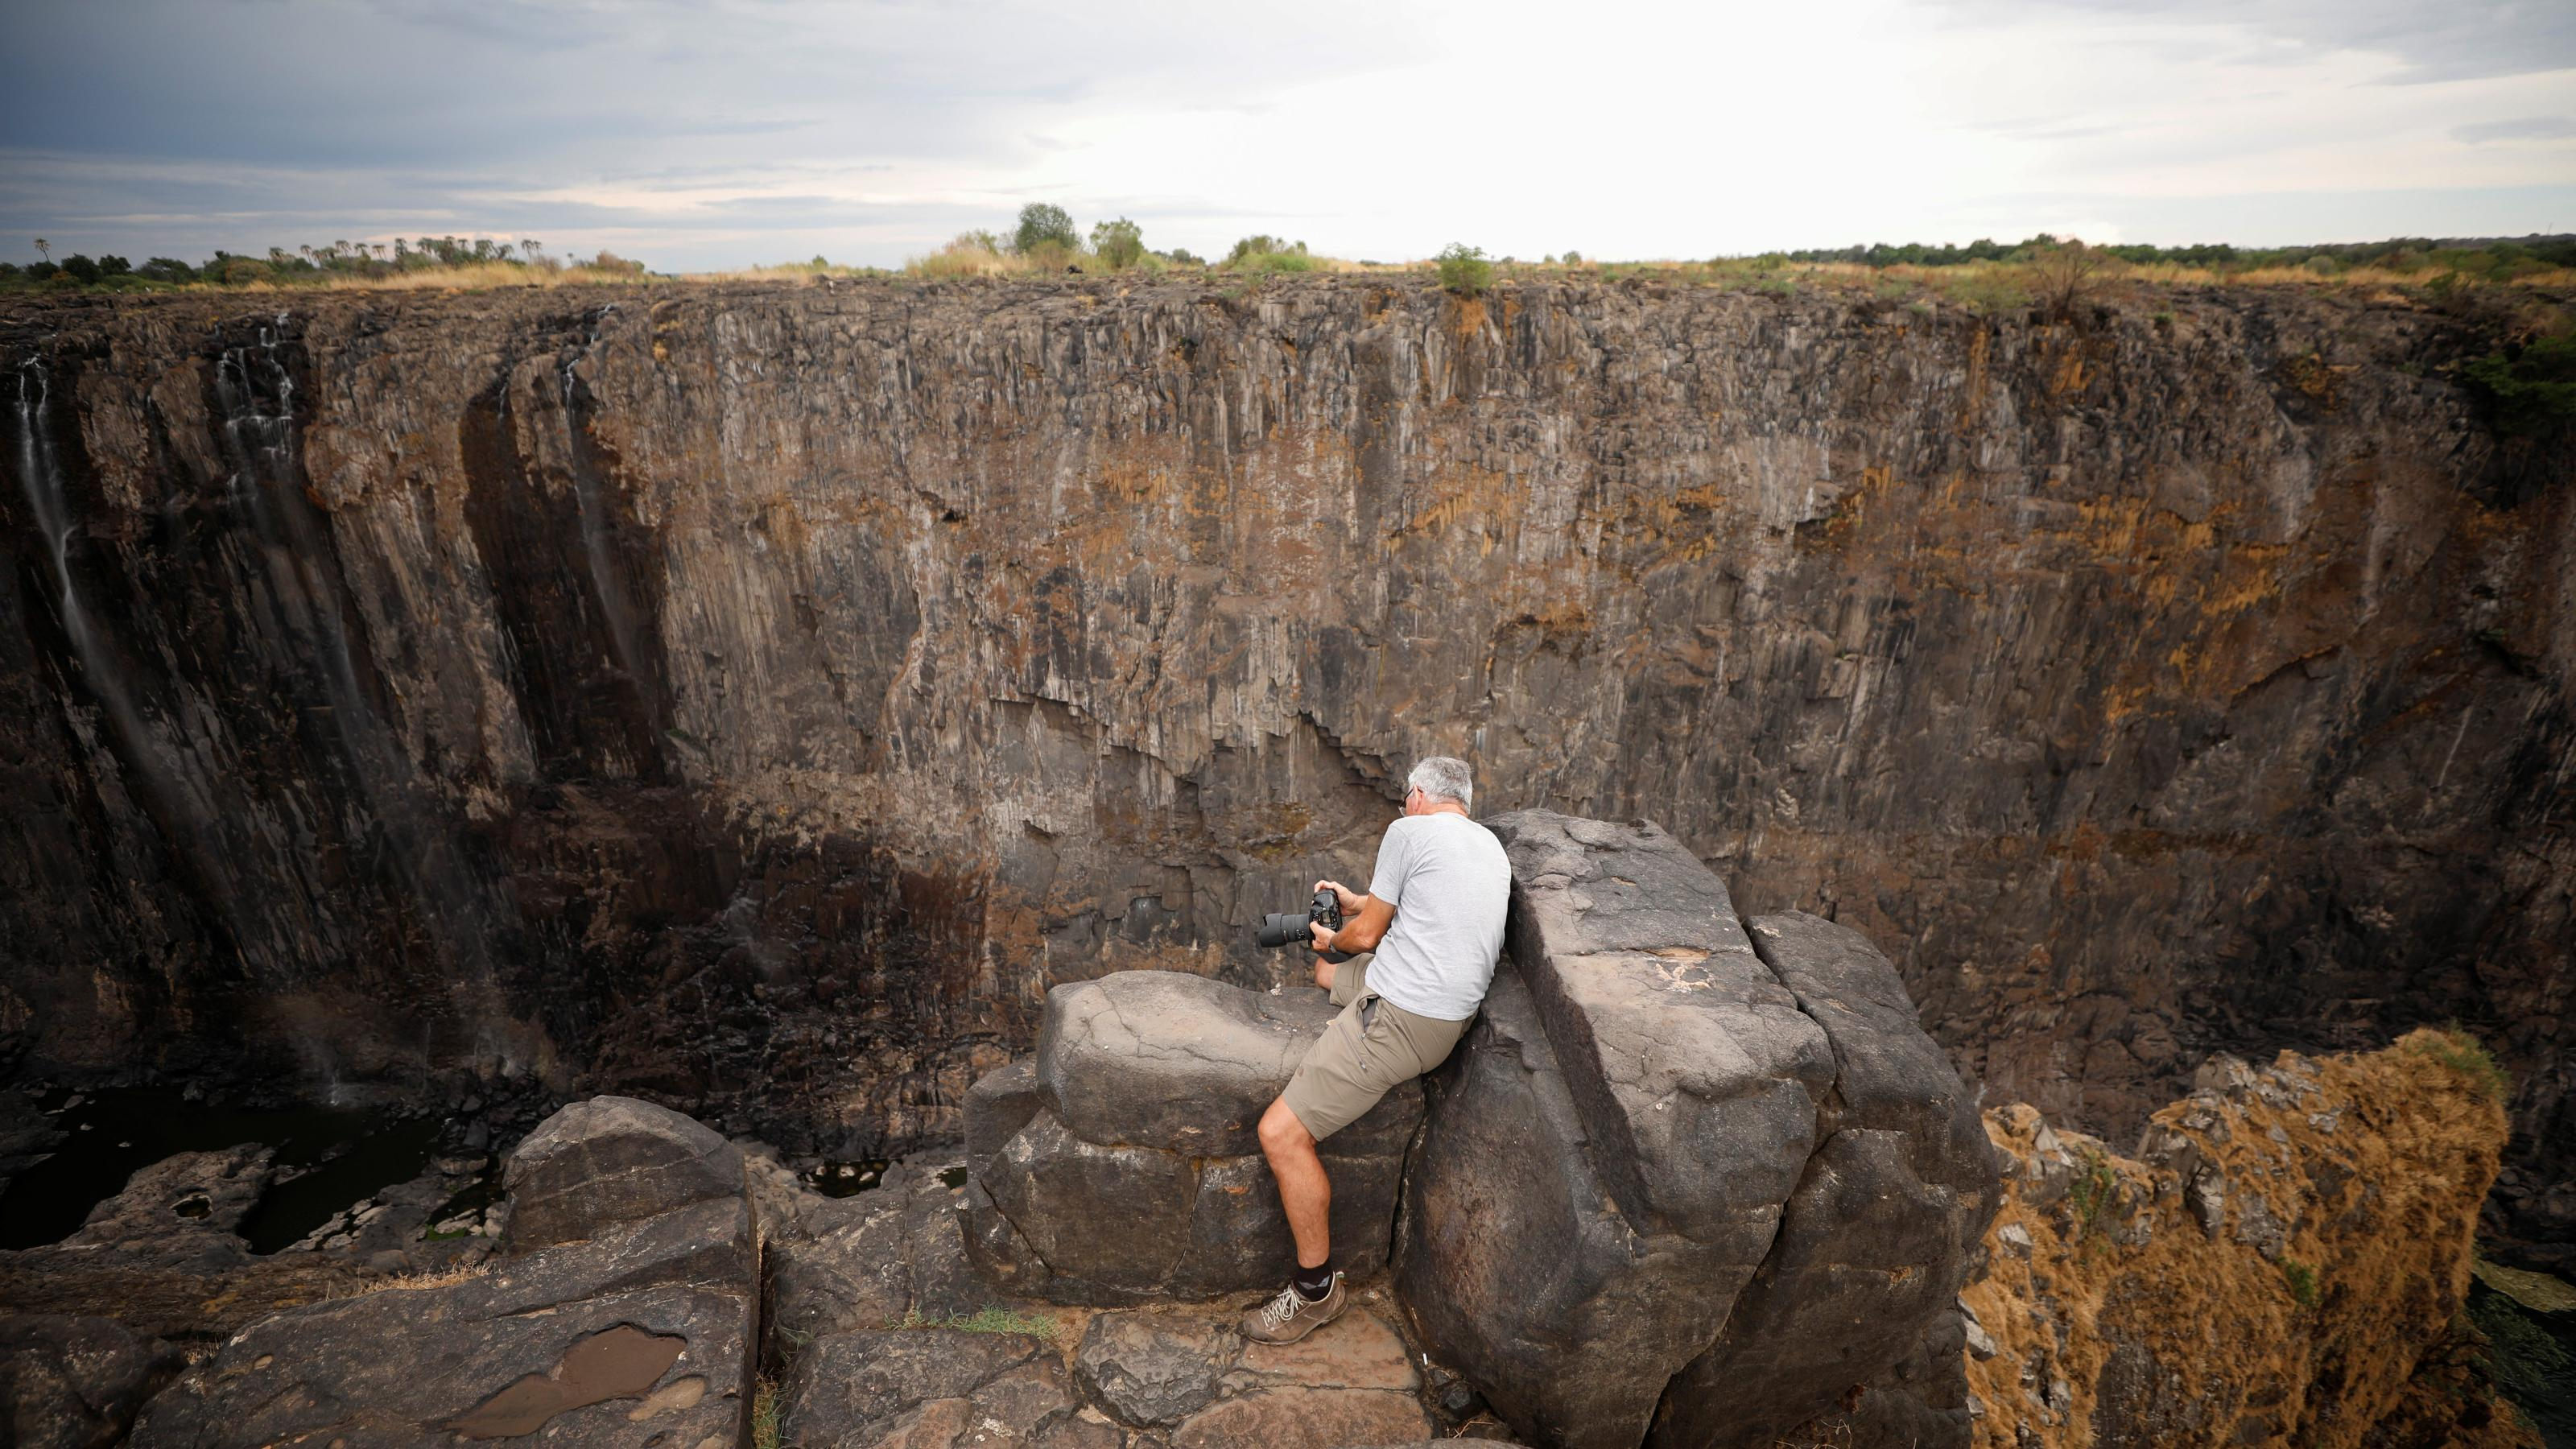 Photos of Victoria Falls running dry in Zimbabwe and Zambia